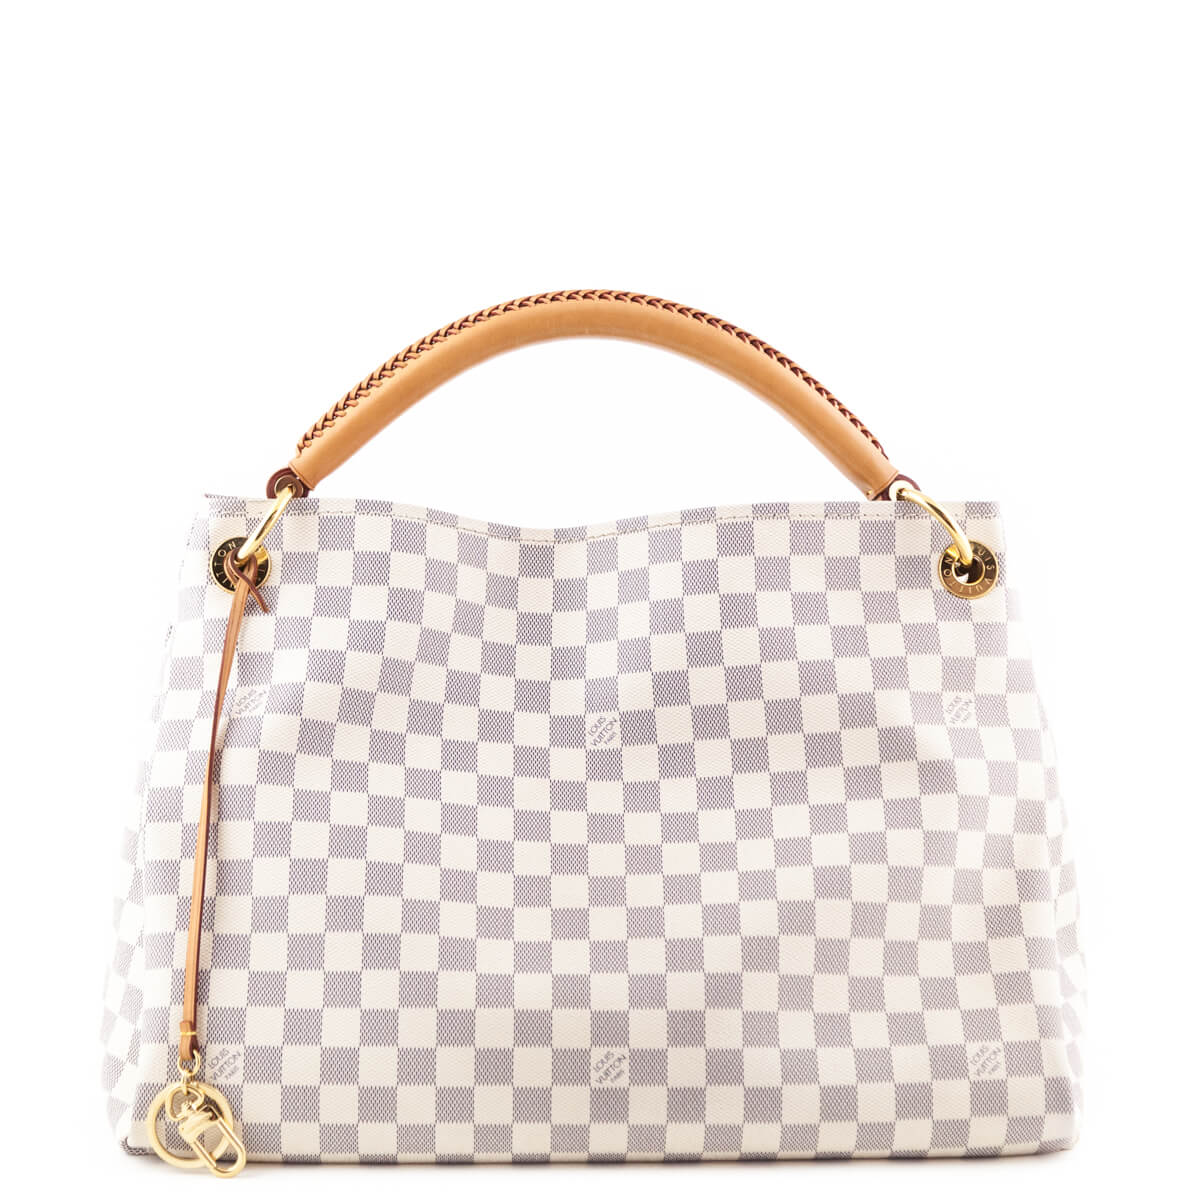 8a4064454e80 Louis Vuitton Damier Azur Artsy MM - LOVE that BAG - Preowned Authentic  Designer Handbags ...